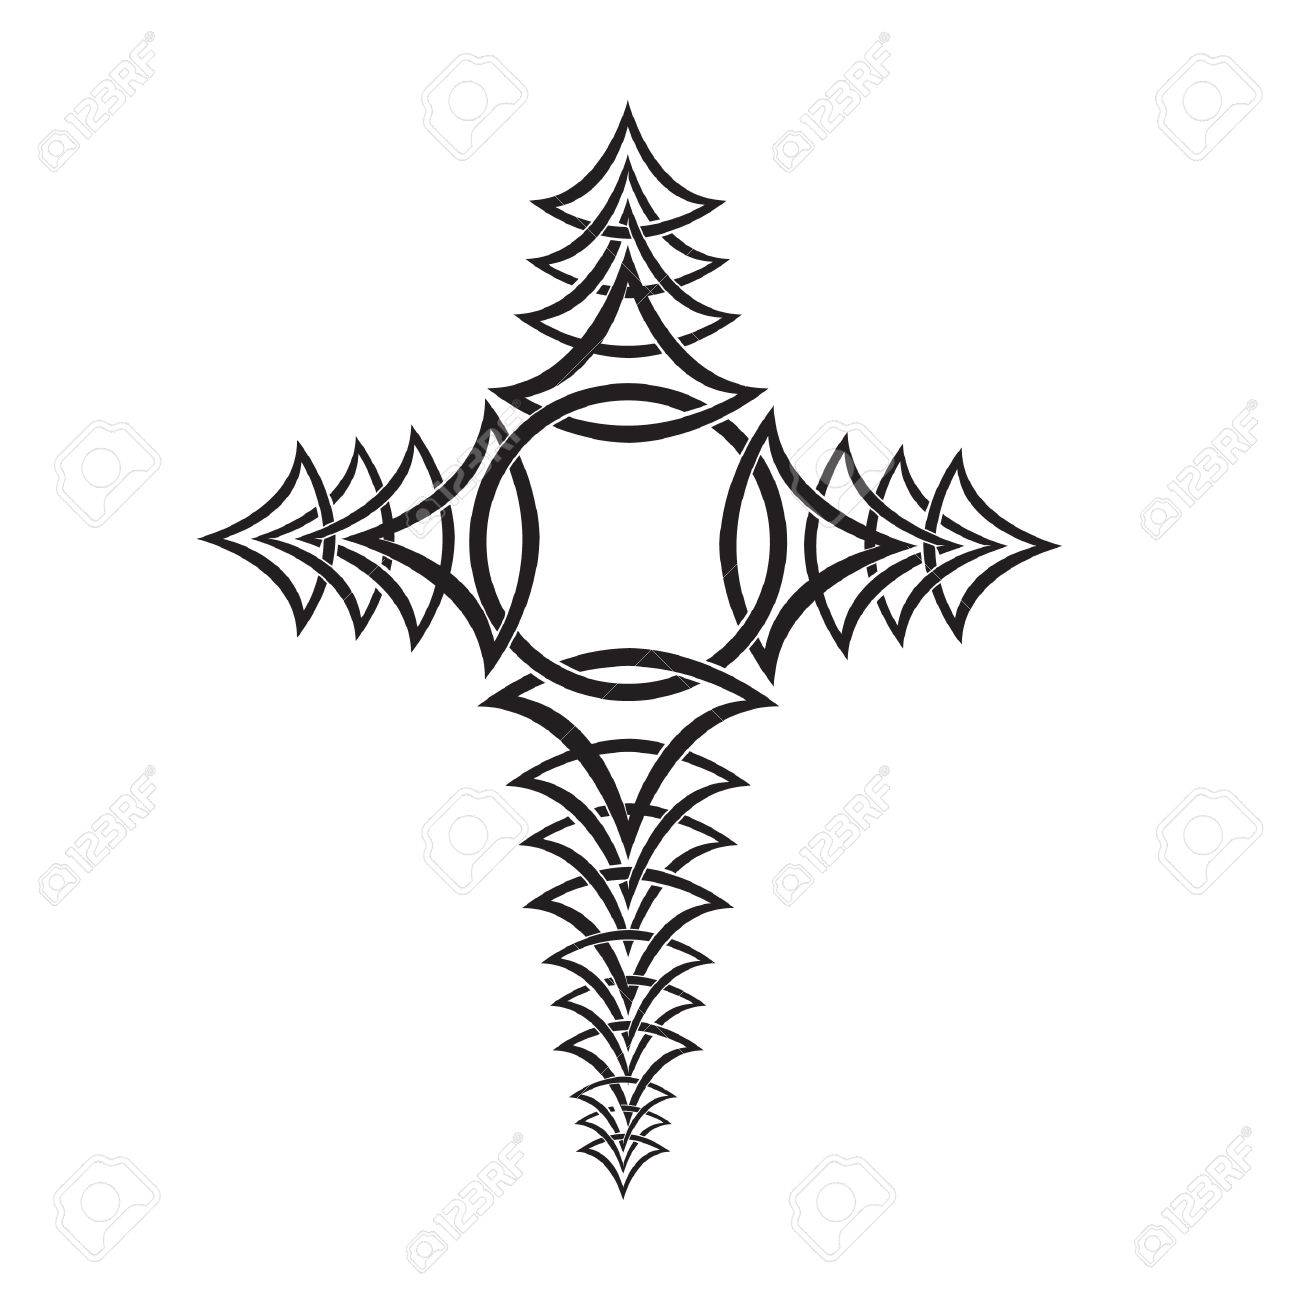 1300x1300 Tribal Cross Tattoo Royalty Free Cliparts, Vectors, And Stock